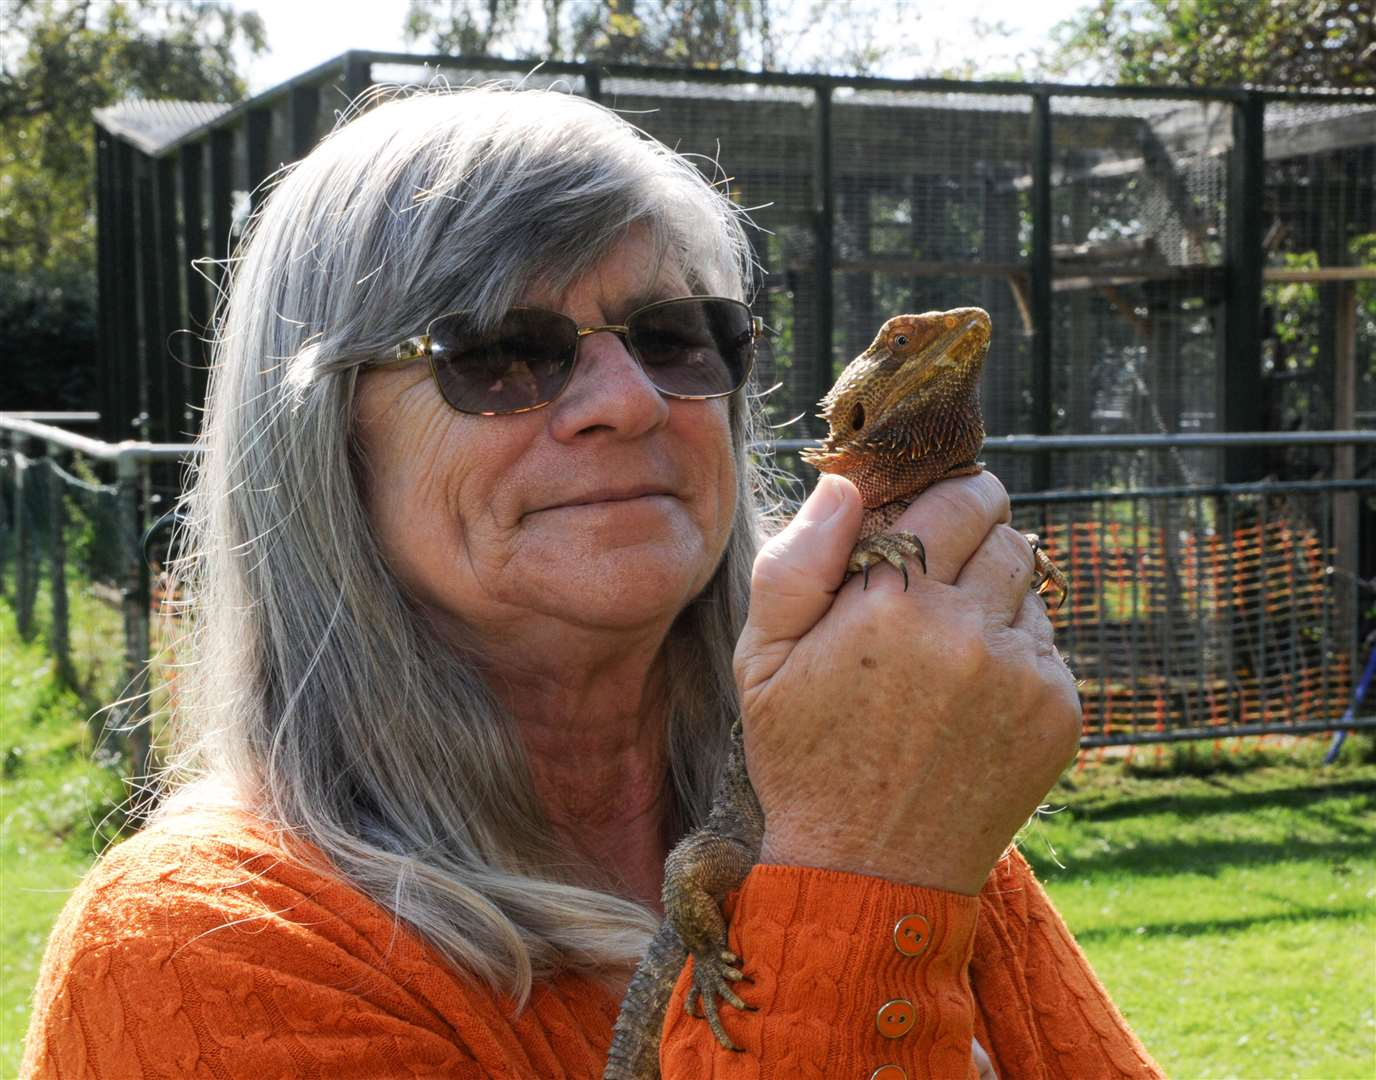 Pam Mansfield, owner of The Exotic Pet Refuge in Deeping St James, with one of her bearded dragon lizards. (41740242)